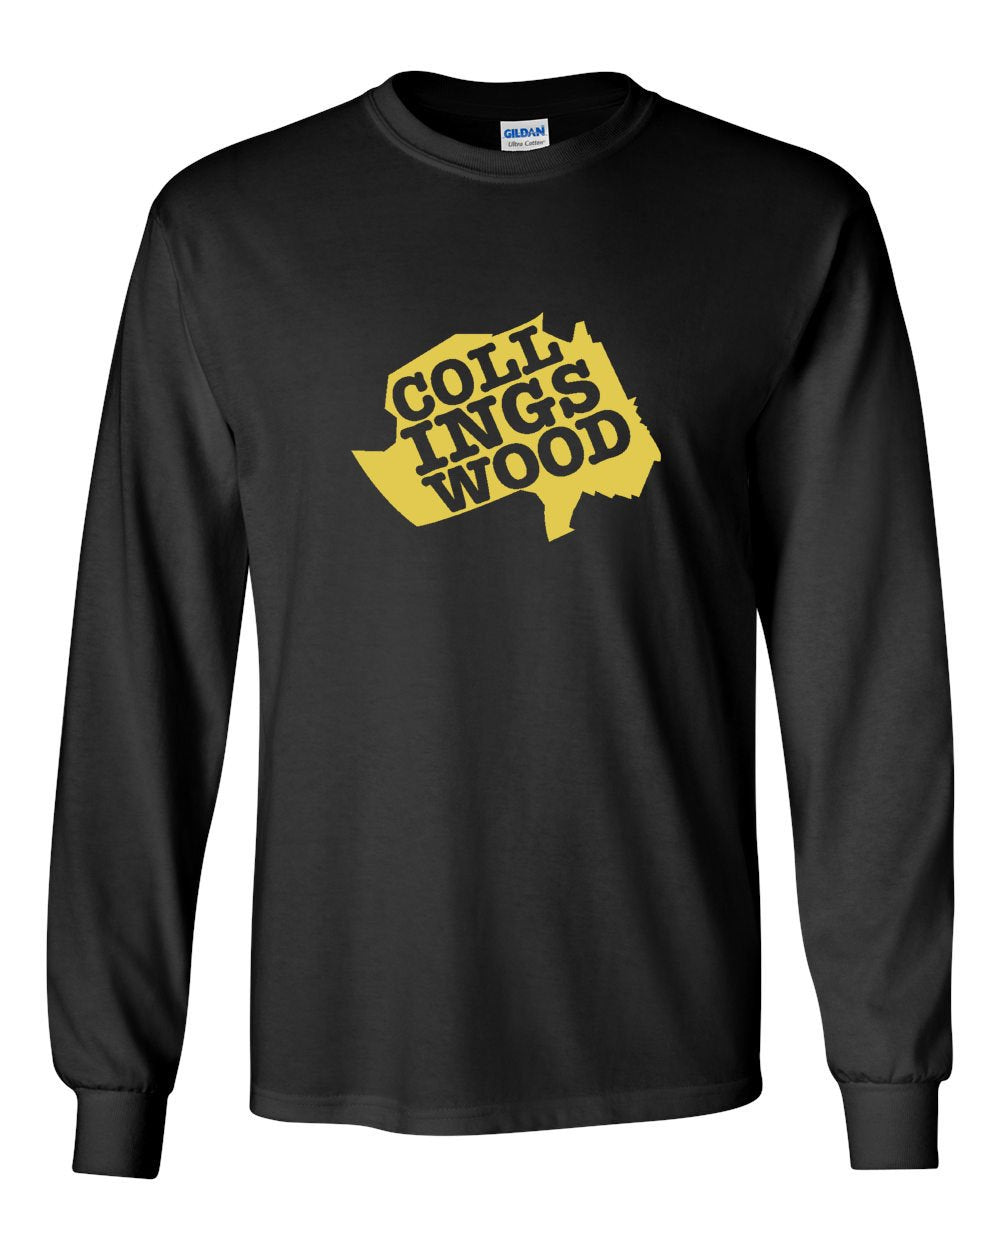 Collingswood Yellow Logo MENS Long Sleeve Heavy Cotton T-Shirt